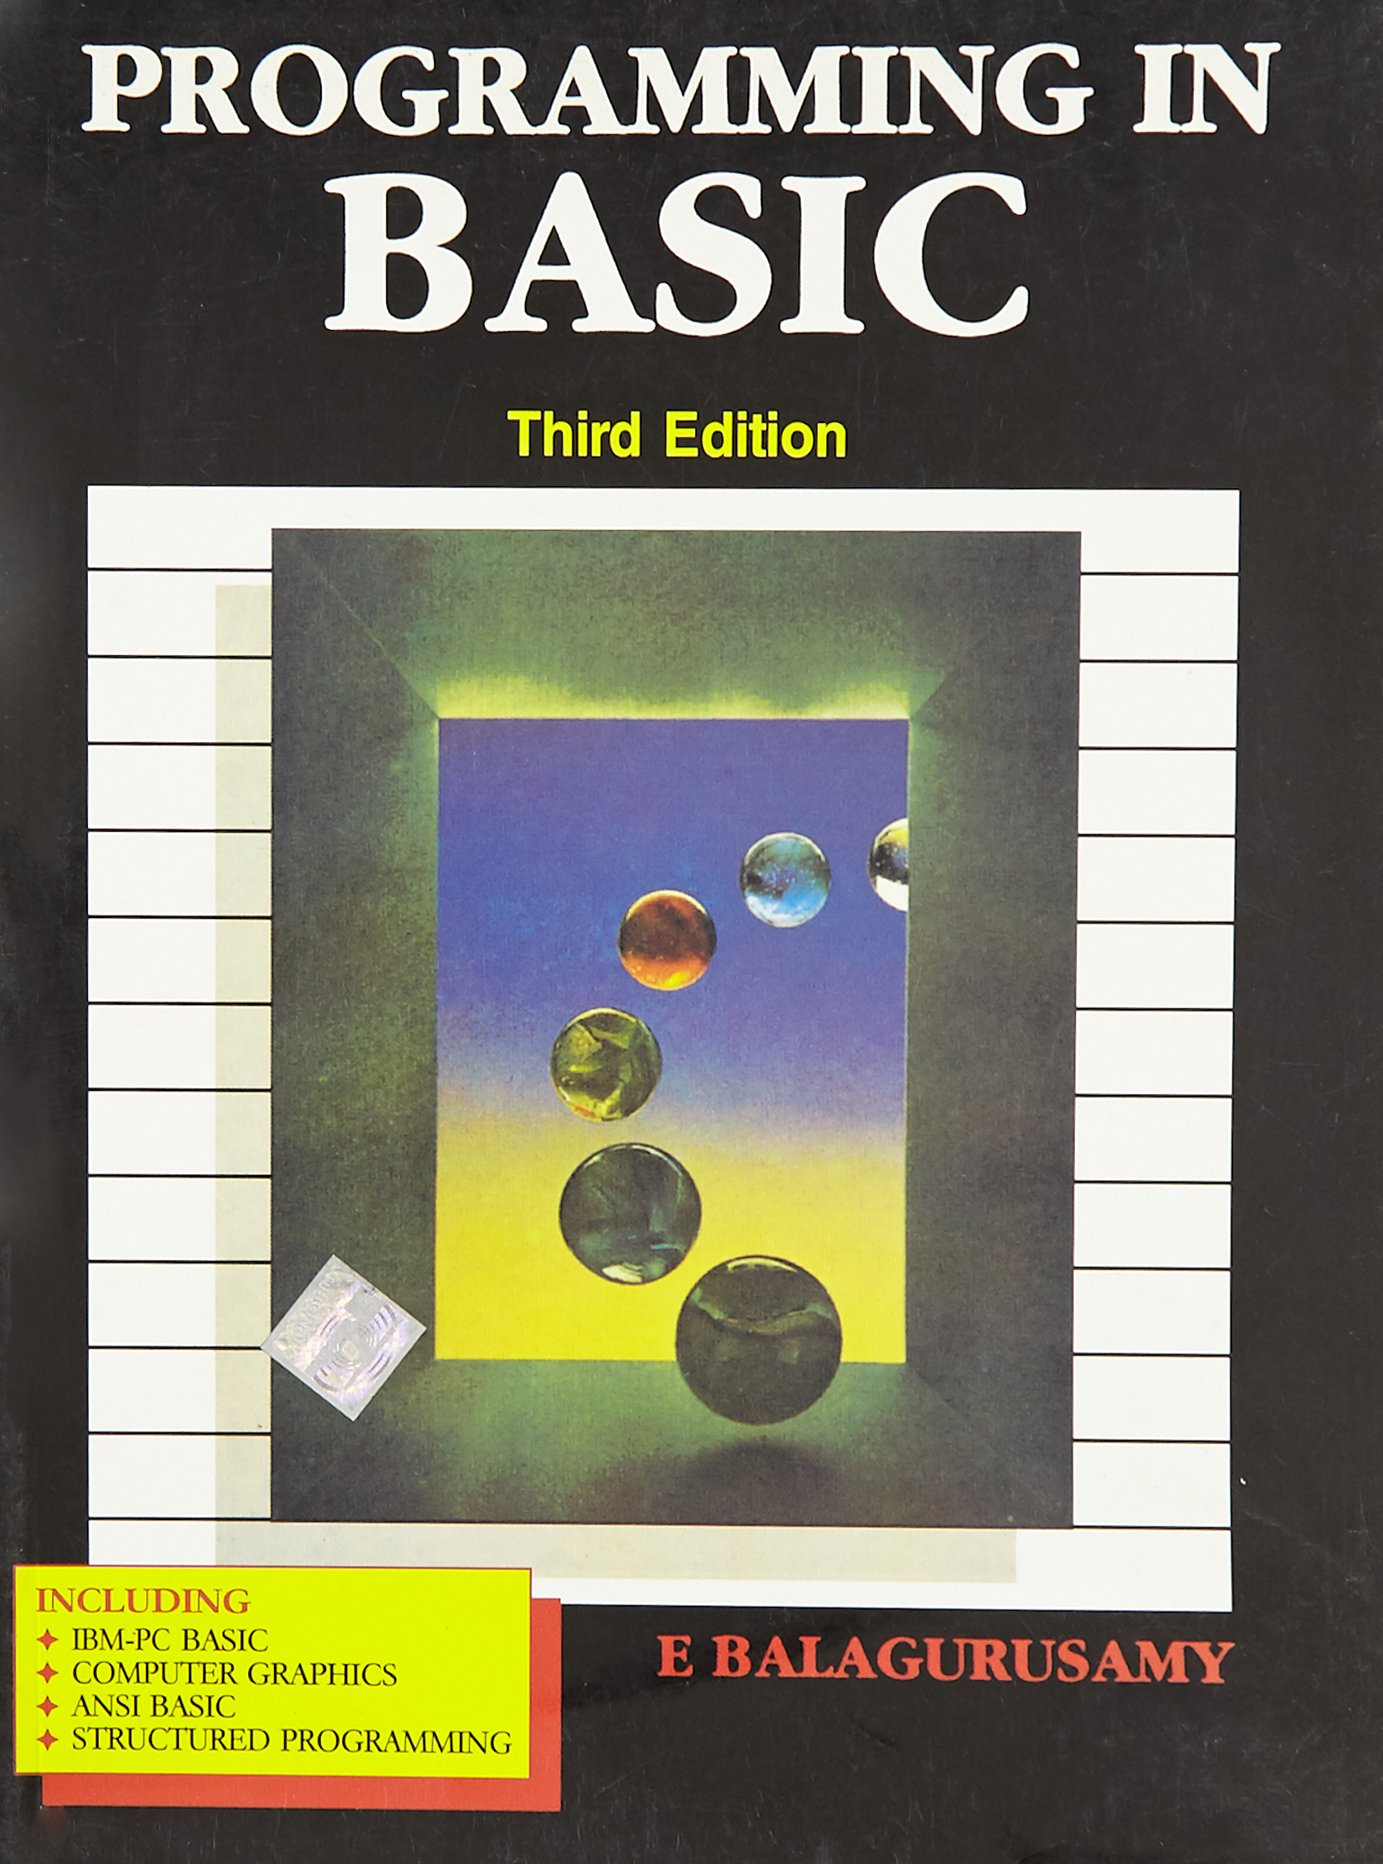 Buy PROGRAMMING IN BASIC Book Online at Low Prices in India